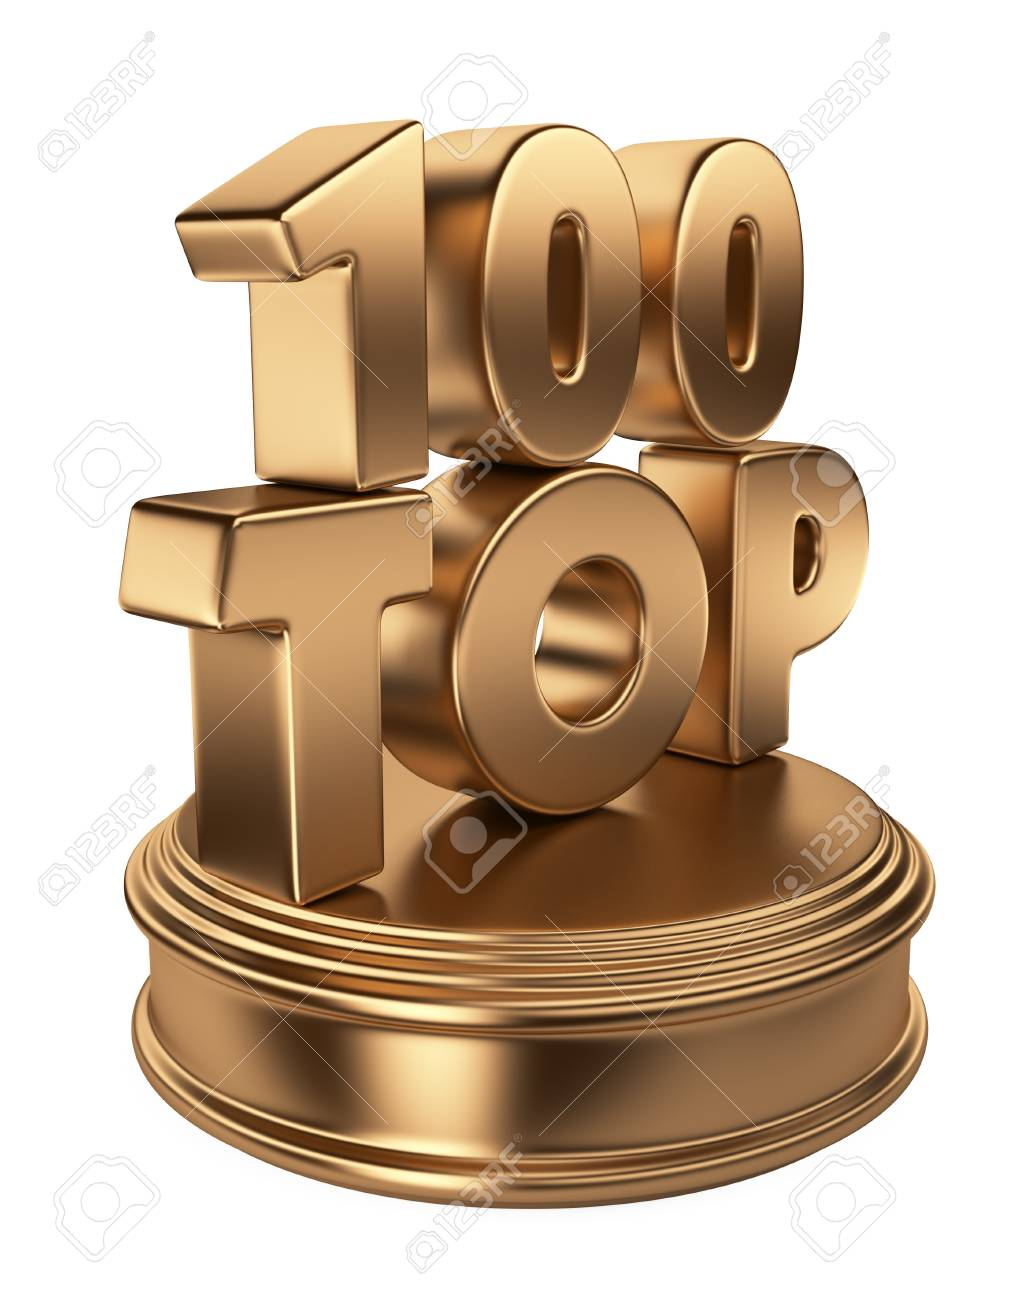 Top 100 on podium 3D icon isolated on white background - 14846798